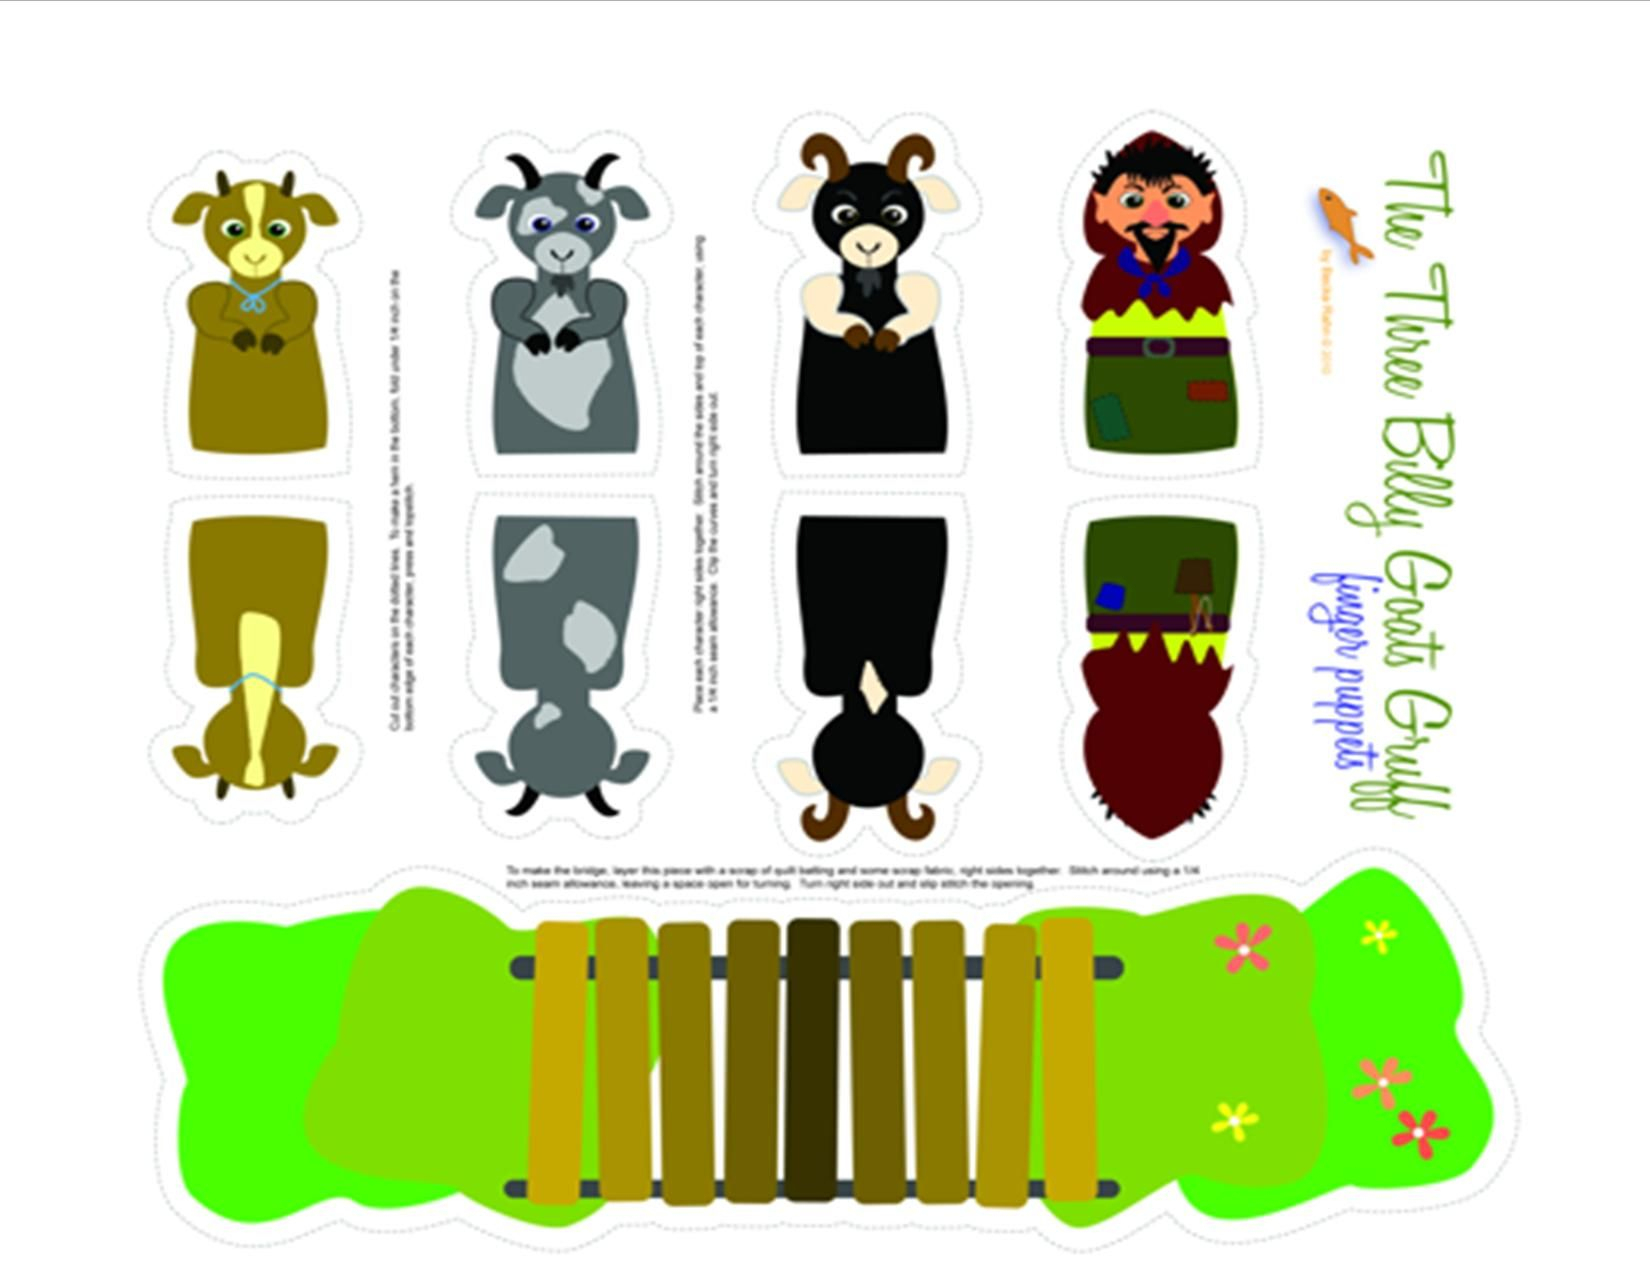 Three Billy Goats Gruff Printable Puppets   Pre-K   Pinterest - Three Billy Goats Gruff Masks Printable Free